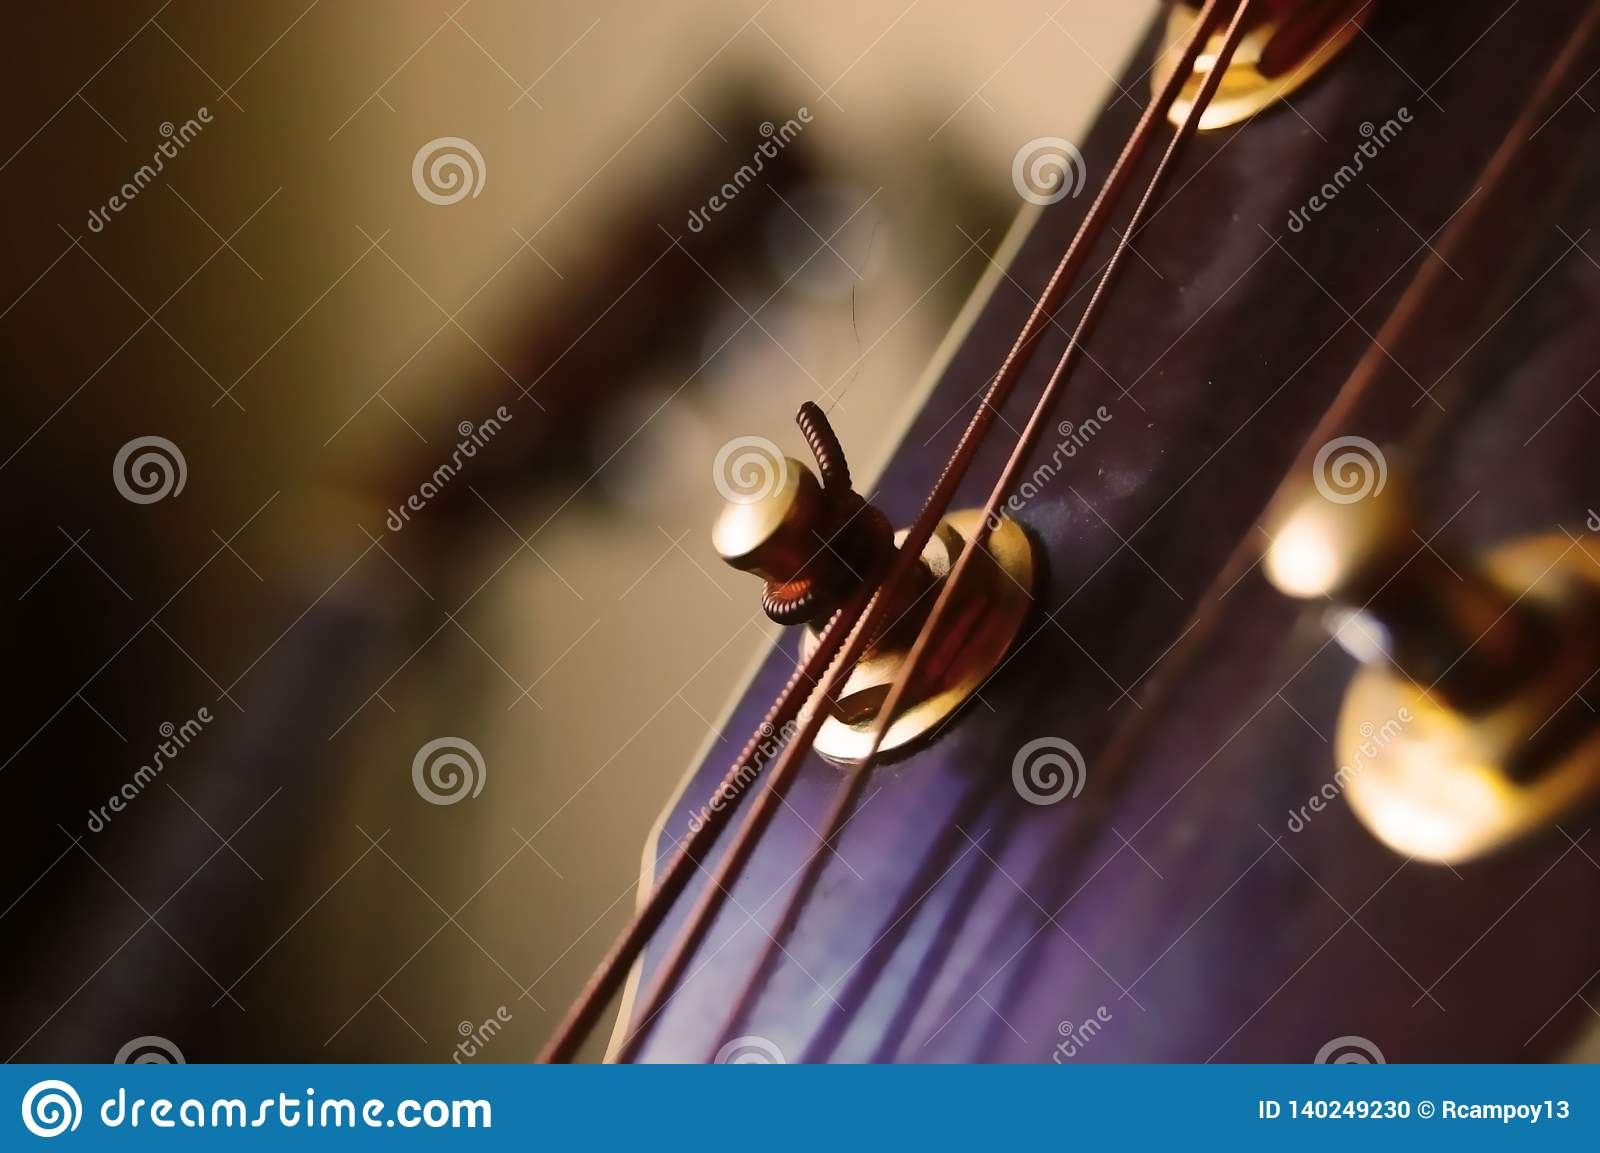 A background of a guitar